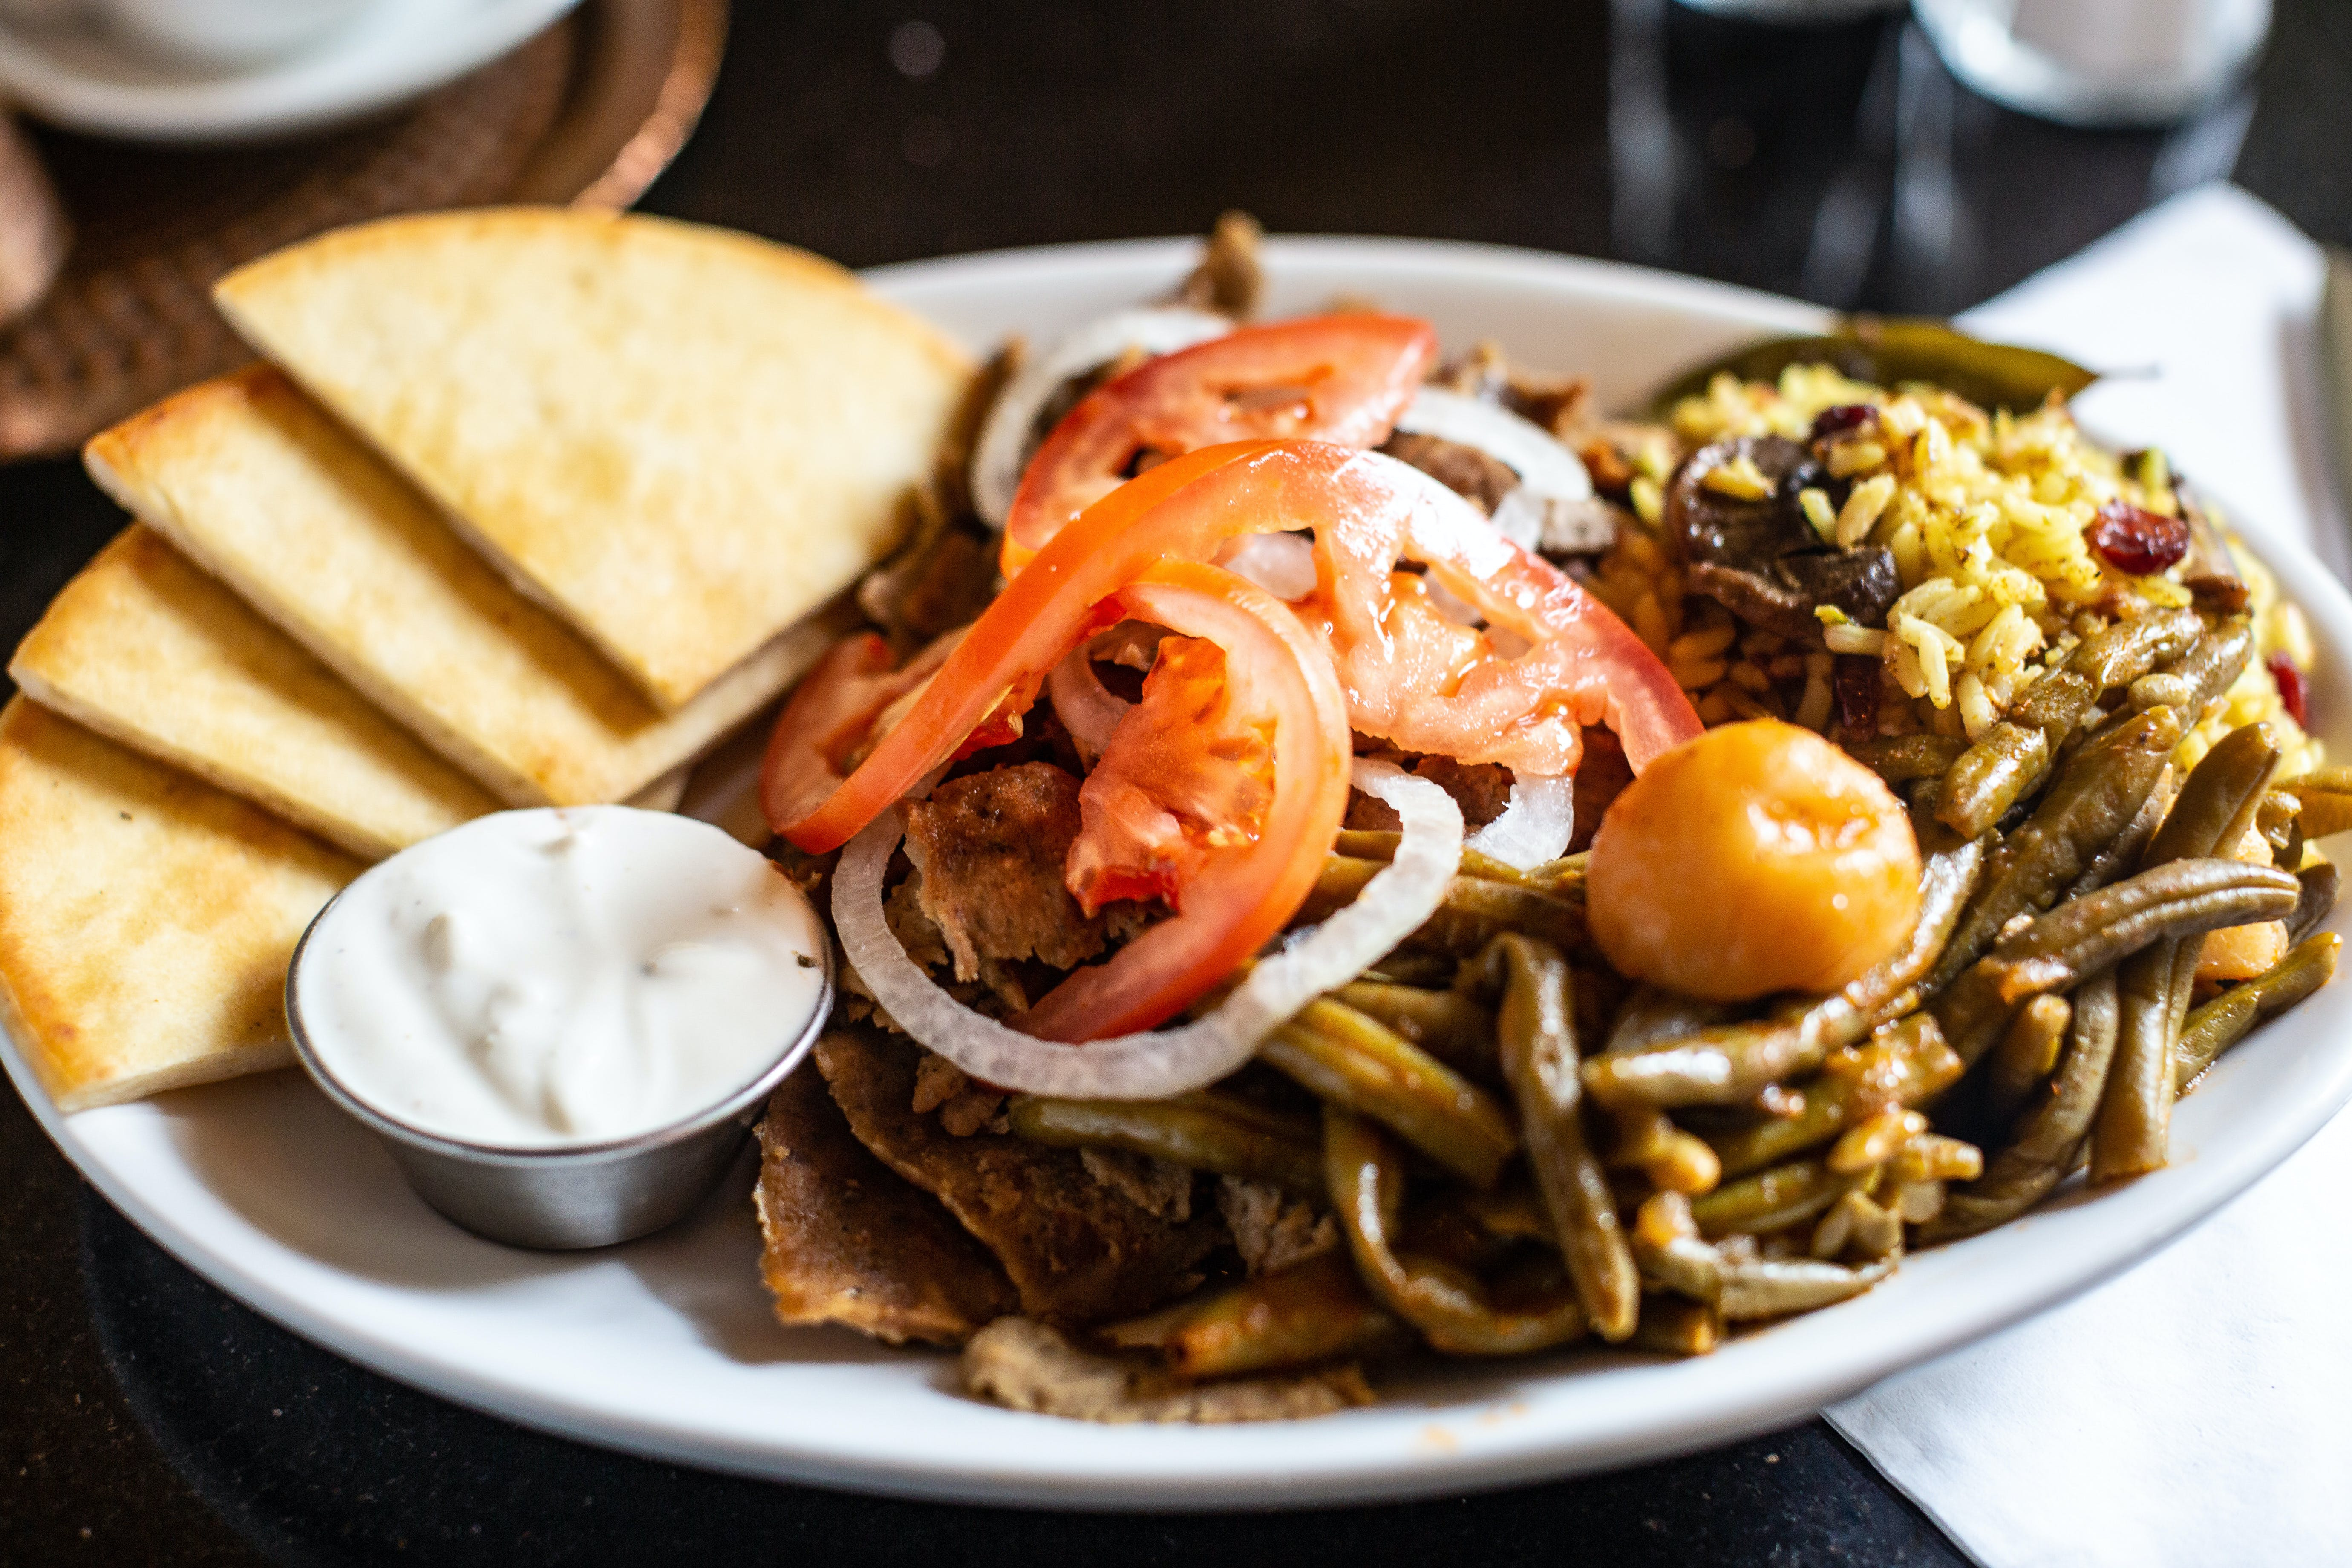 Gyros Dinner from The Mad Greek in Lawrence, KS